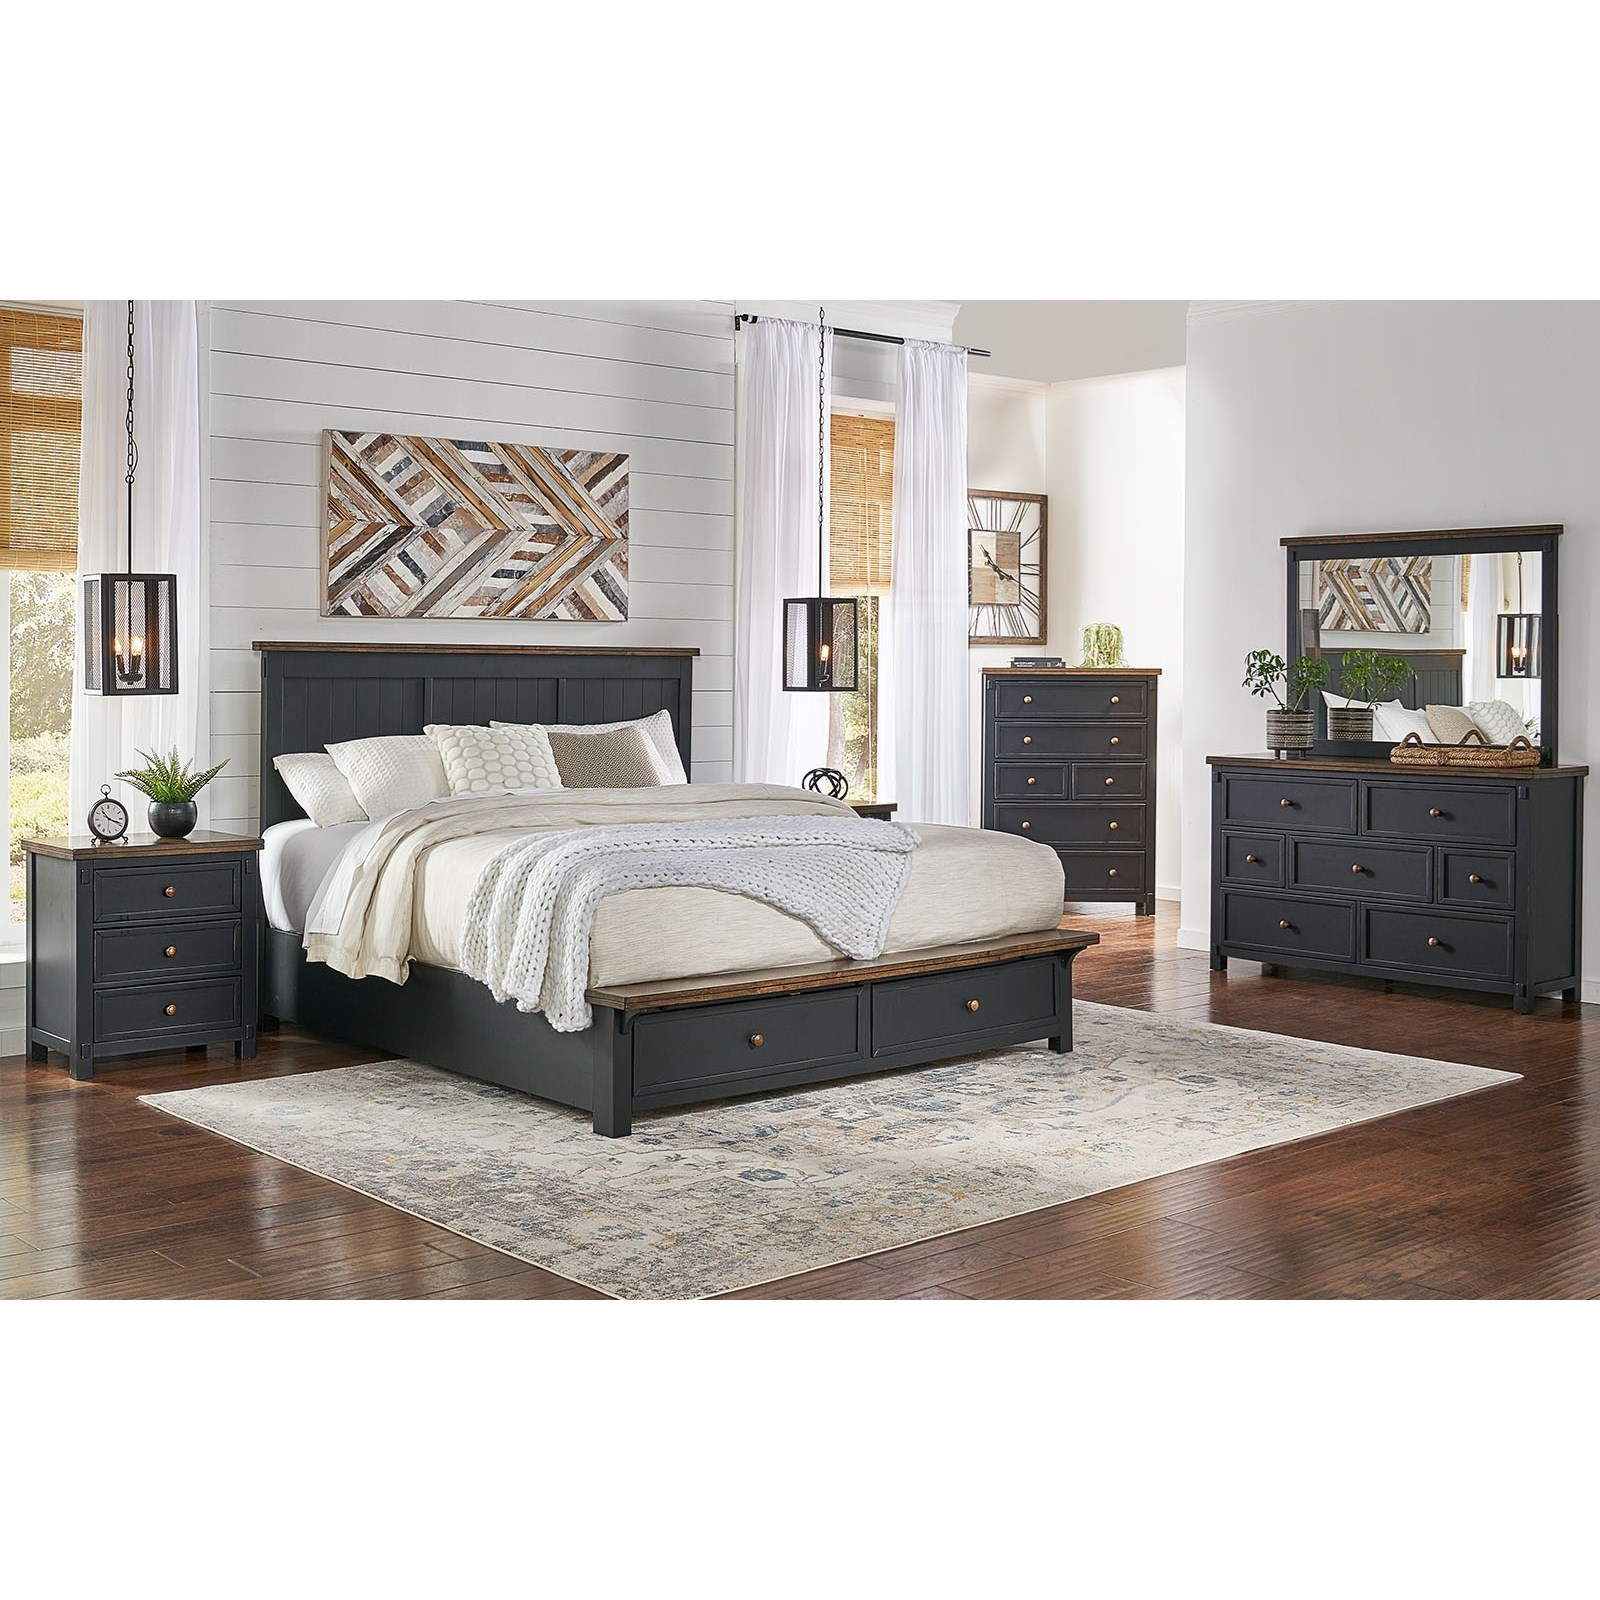 Spencer 5 Piece Queen Bedroom Group by A-A at Walker's Furniture